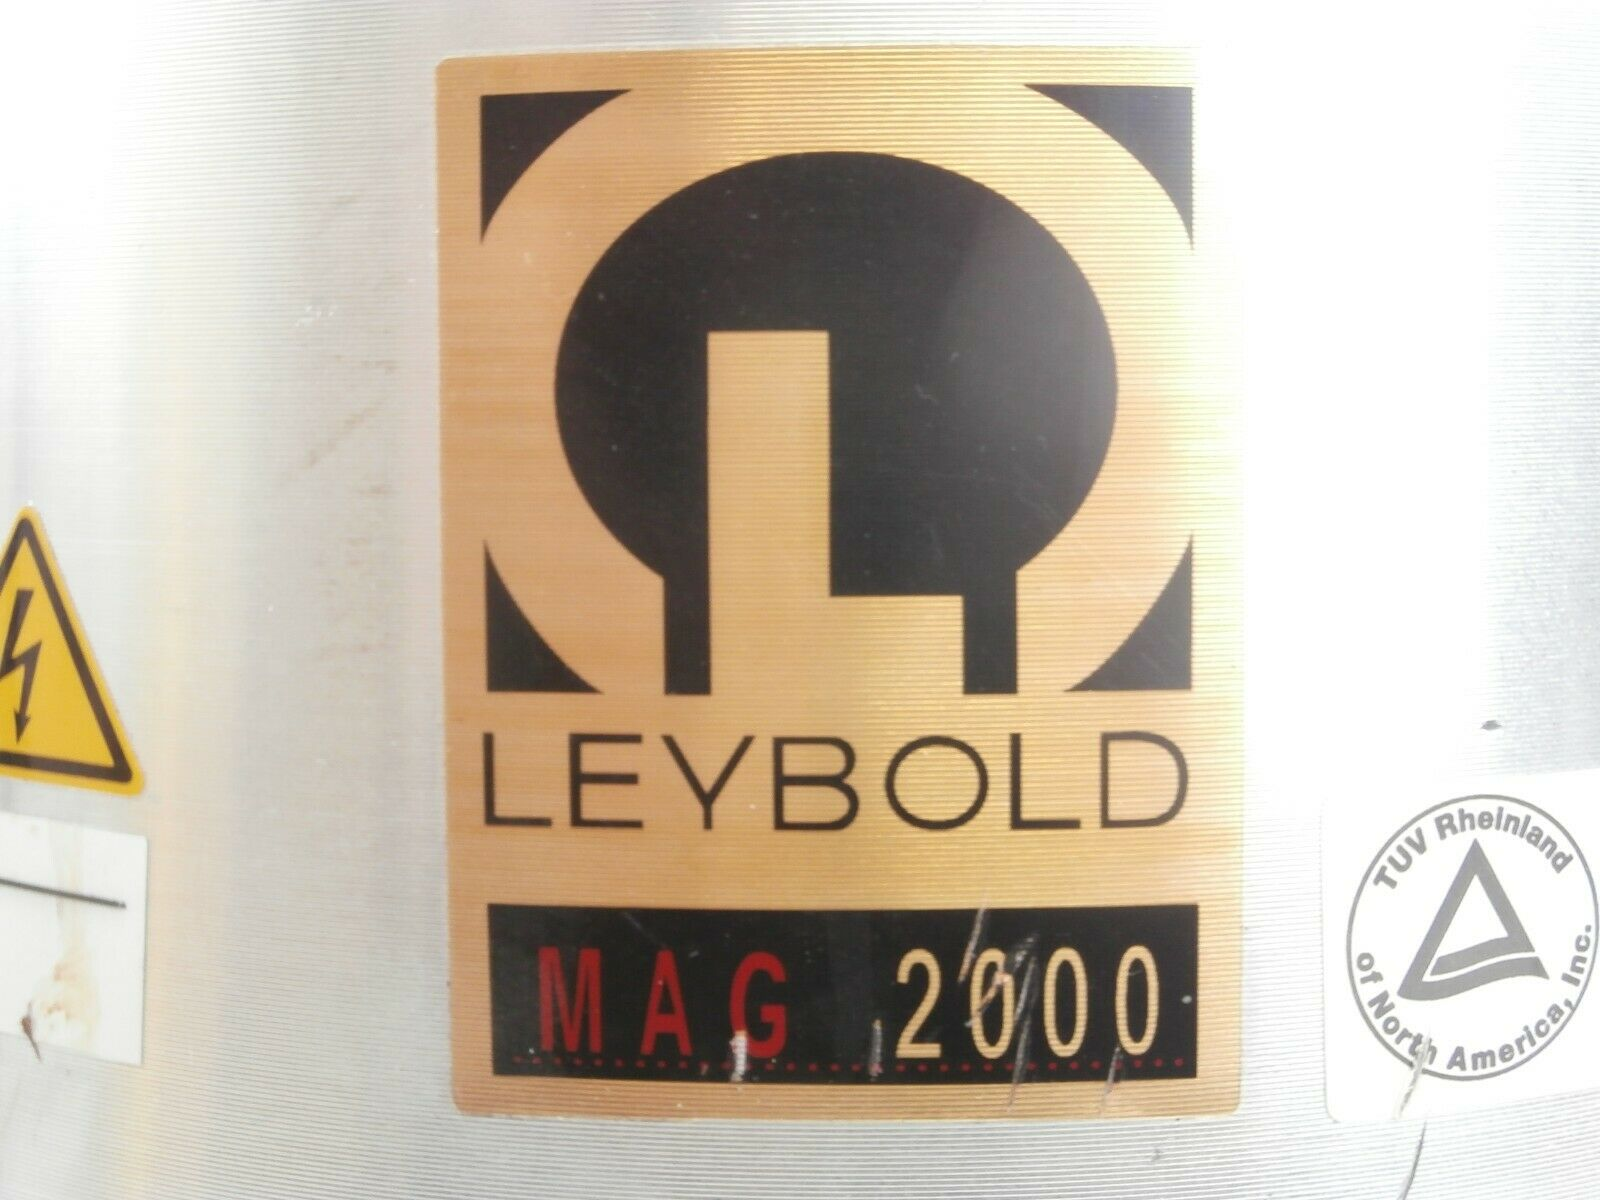 MAG 2000 Leybold 12131 Turbomolecular Pump Turbo 58047 Hours Tested Working